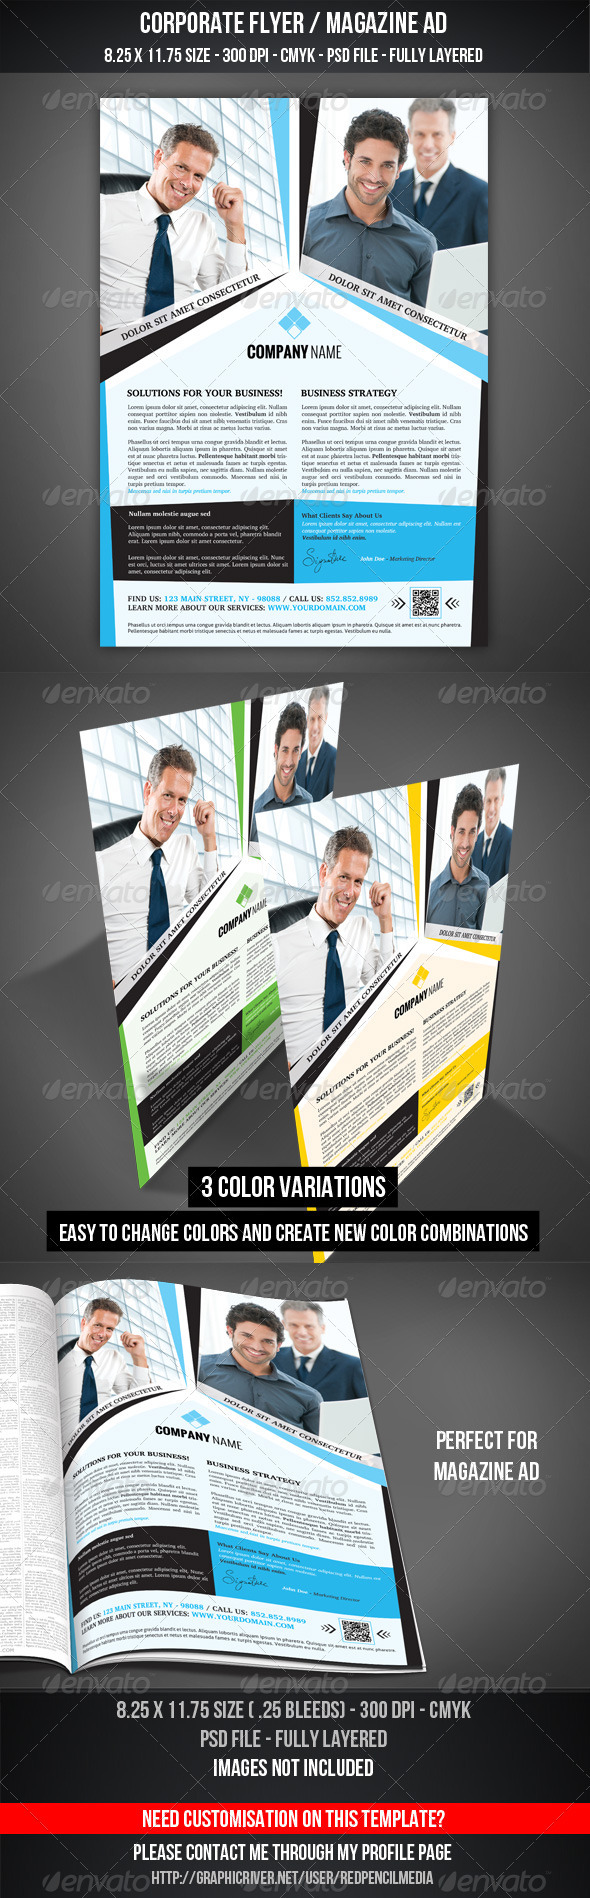 GraphicRiver Corporate Flyer Magazine AD 3343537